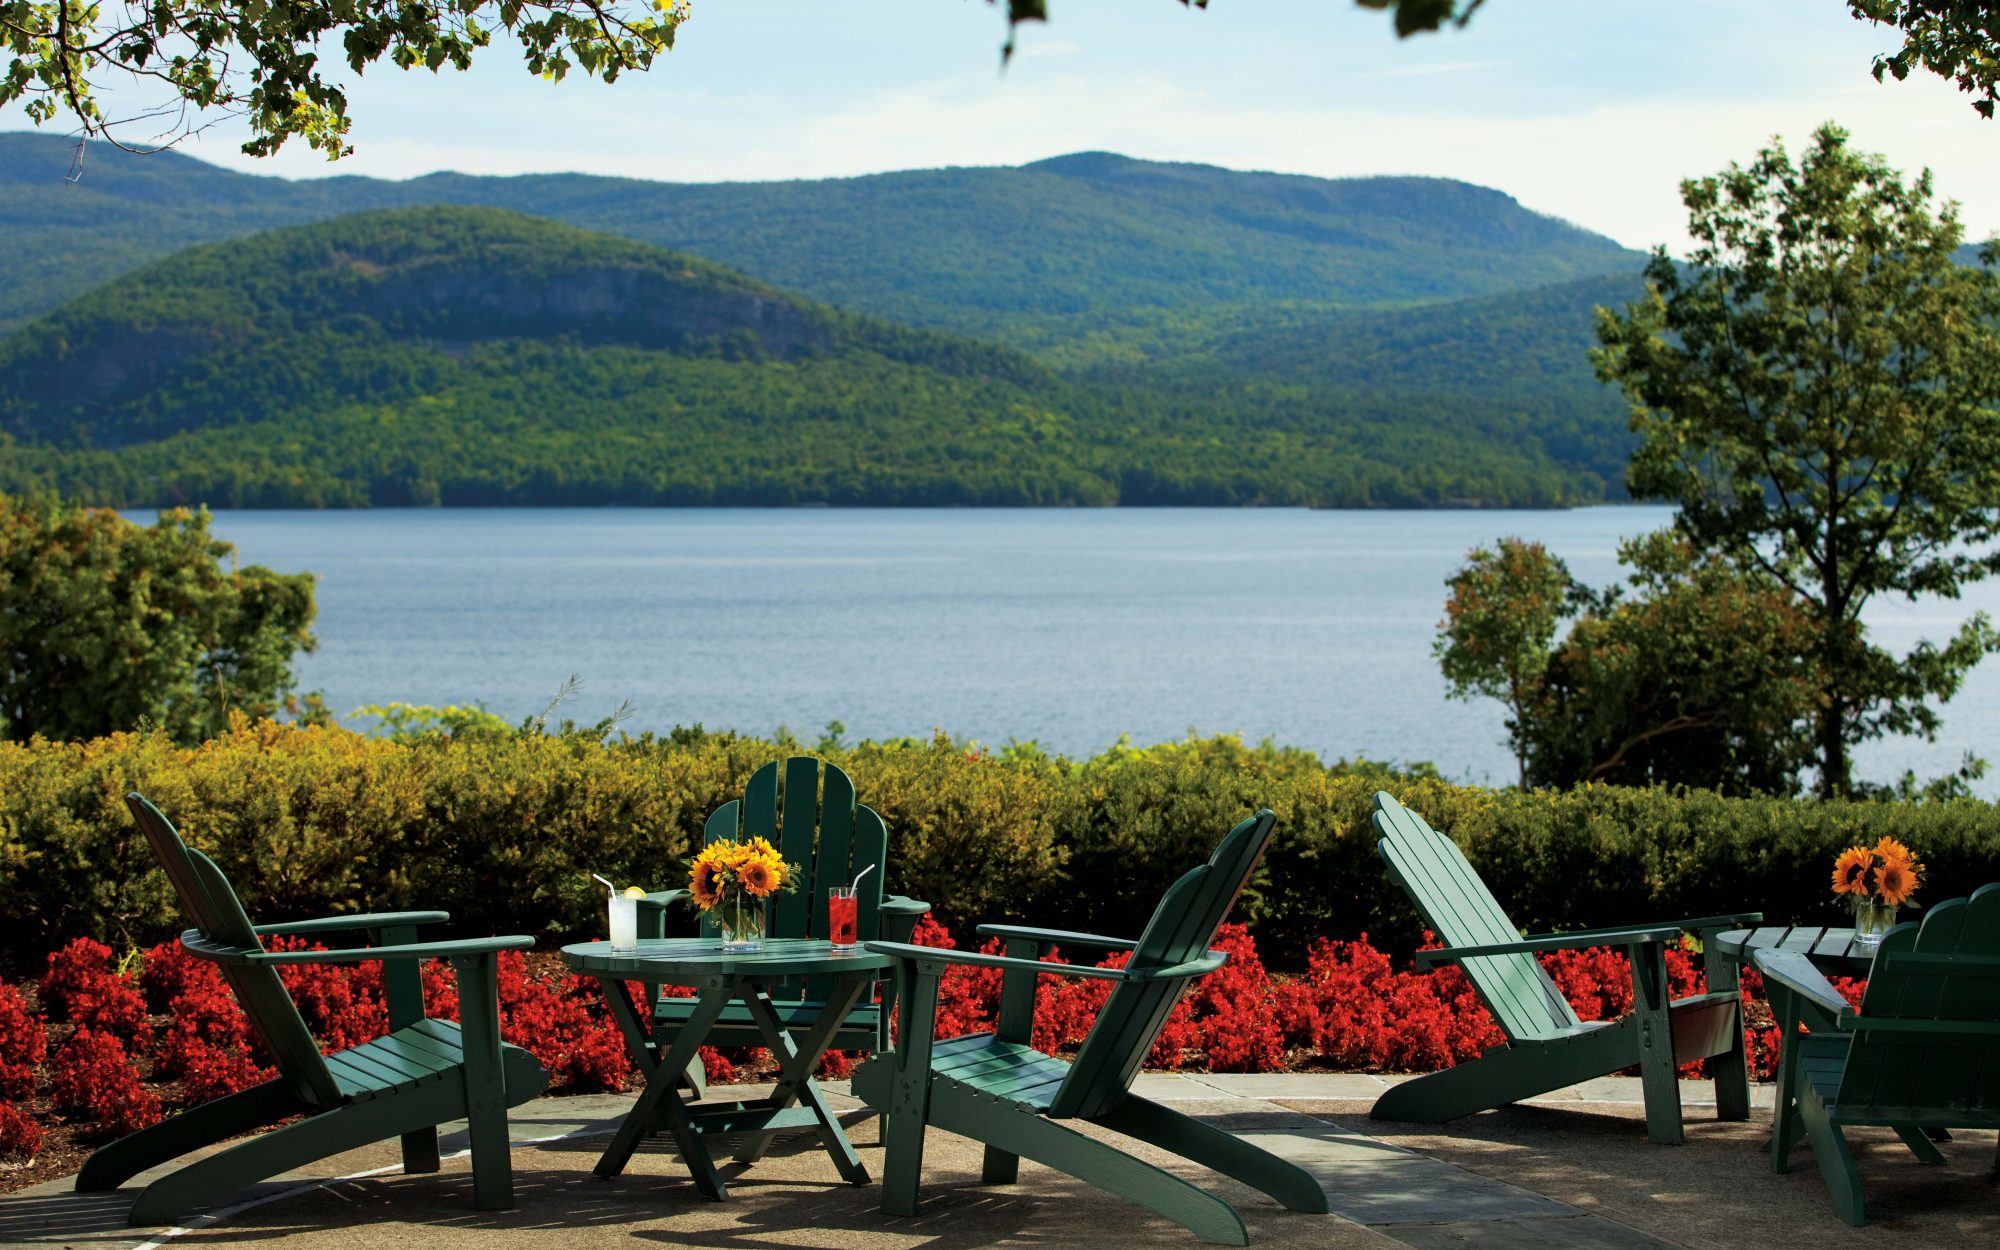 Best Resorts in the Continental U.S.: The Sagamore Resort, Bolton Landing, New York